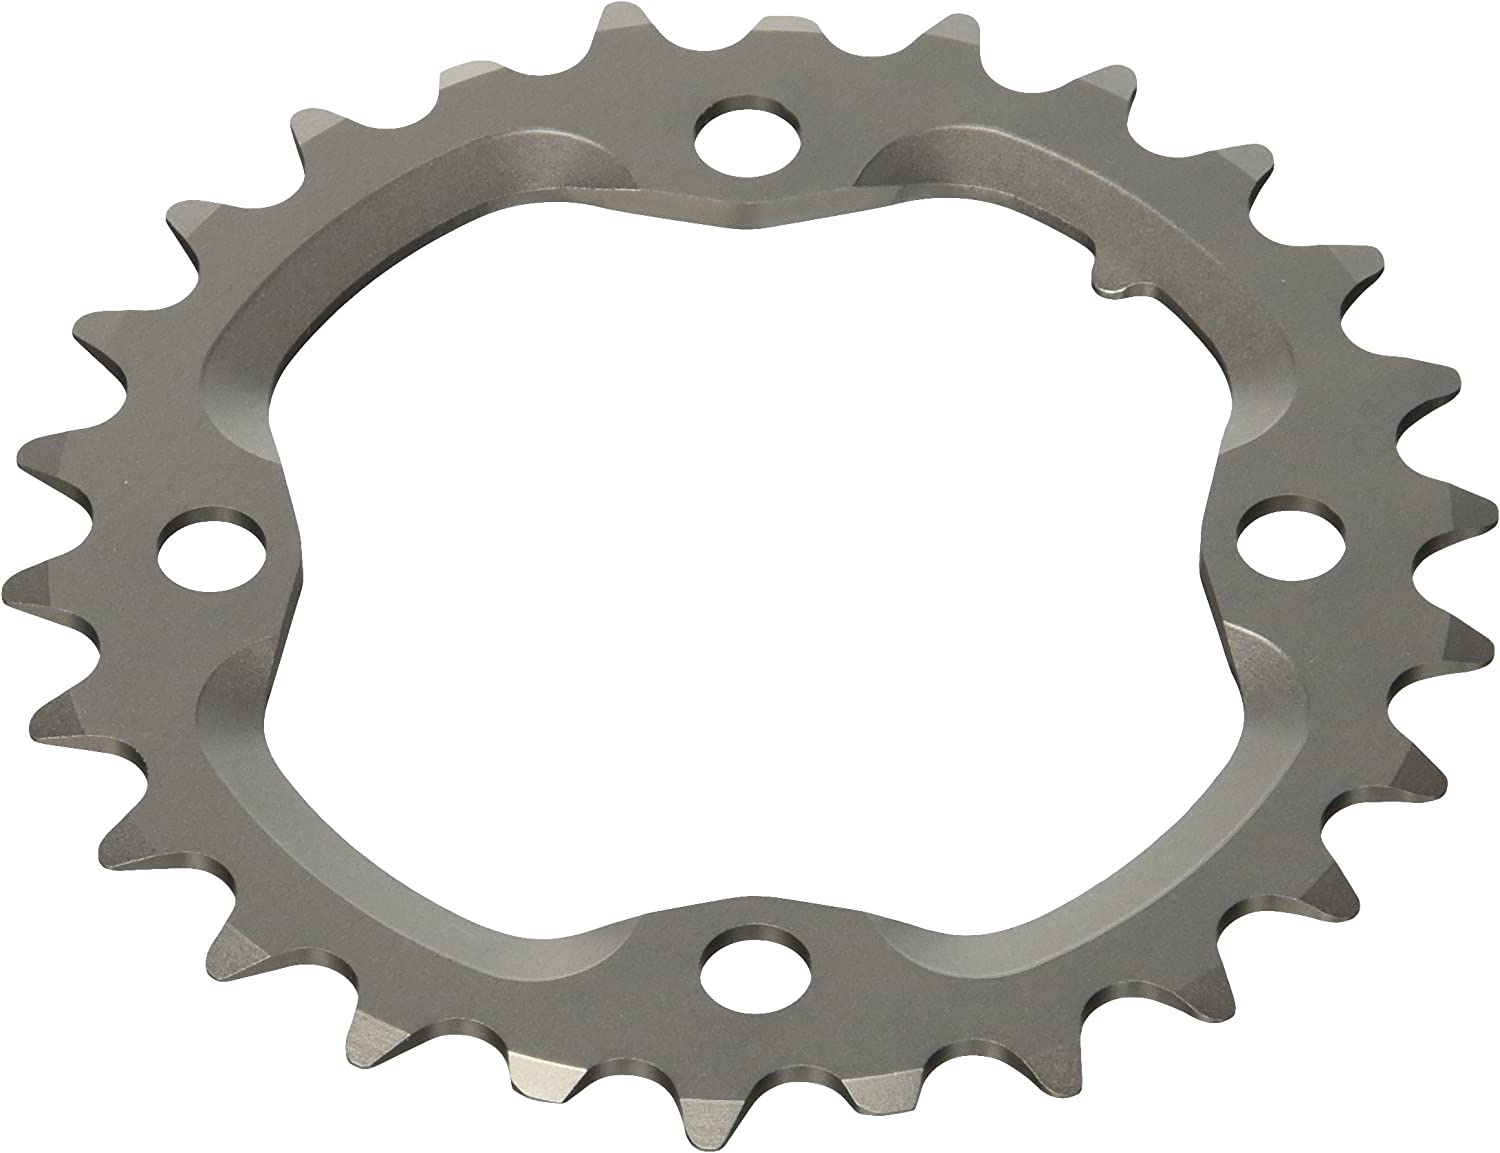 SRAM//TruVativ XX 26T x 80mm BCD Chainring Use with 39T